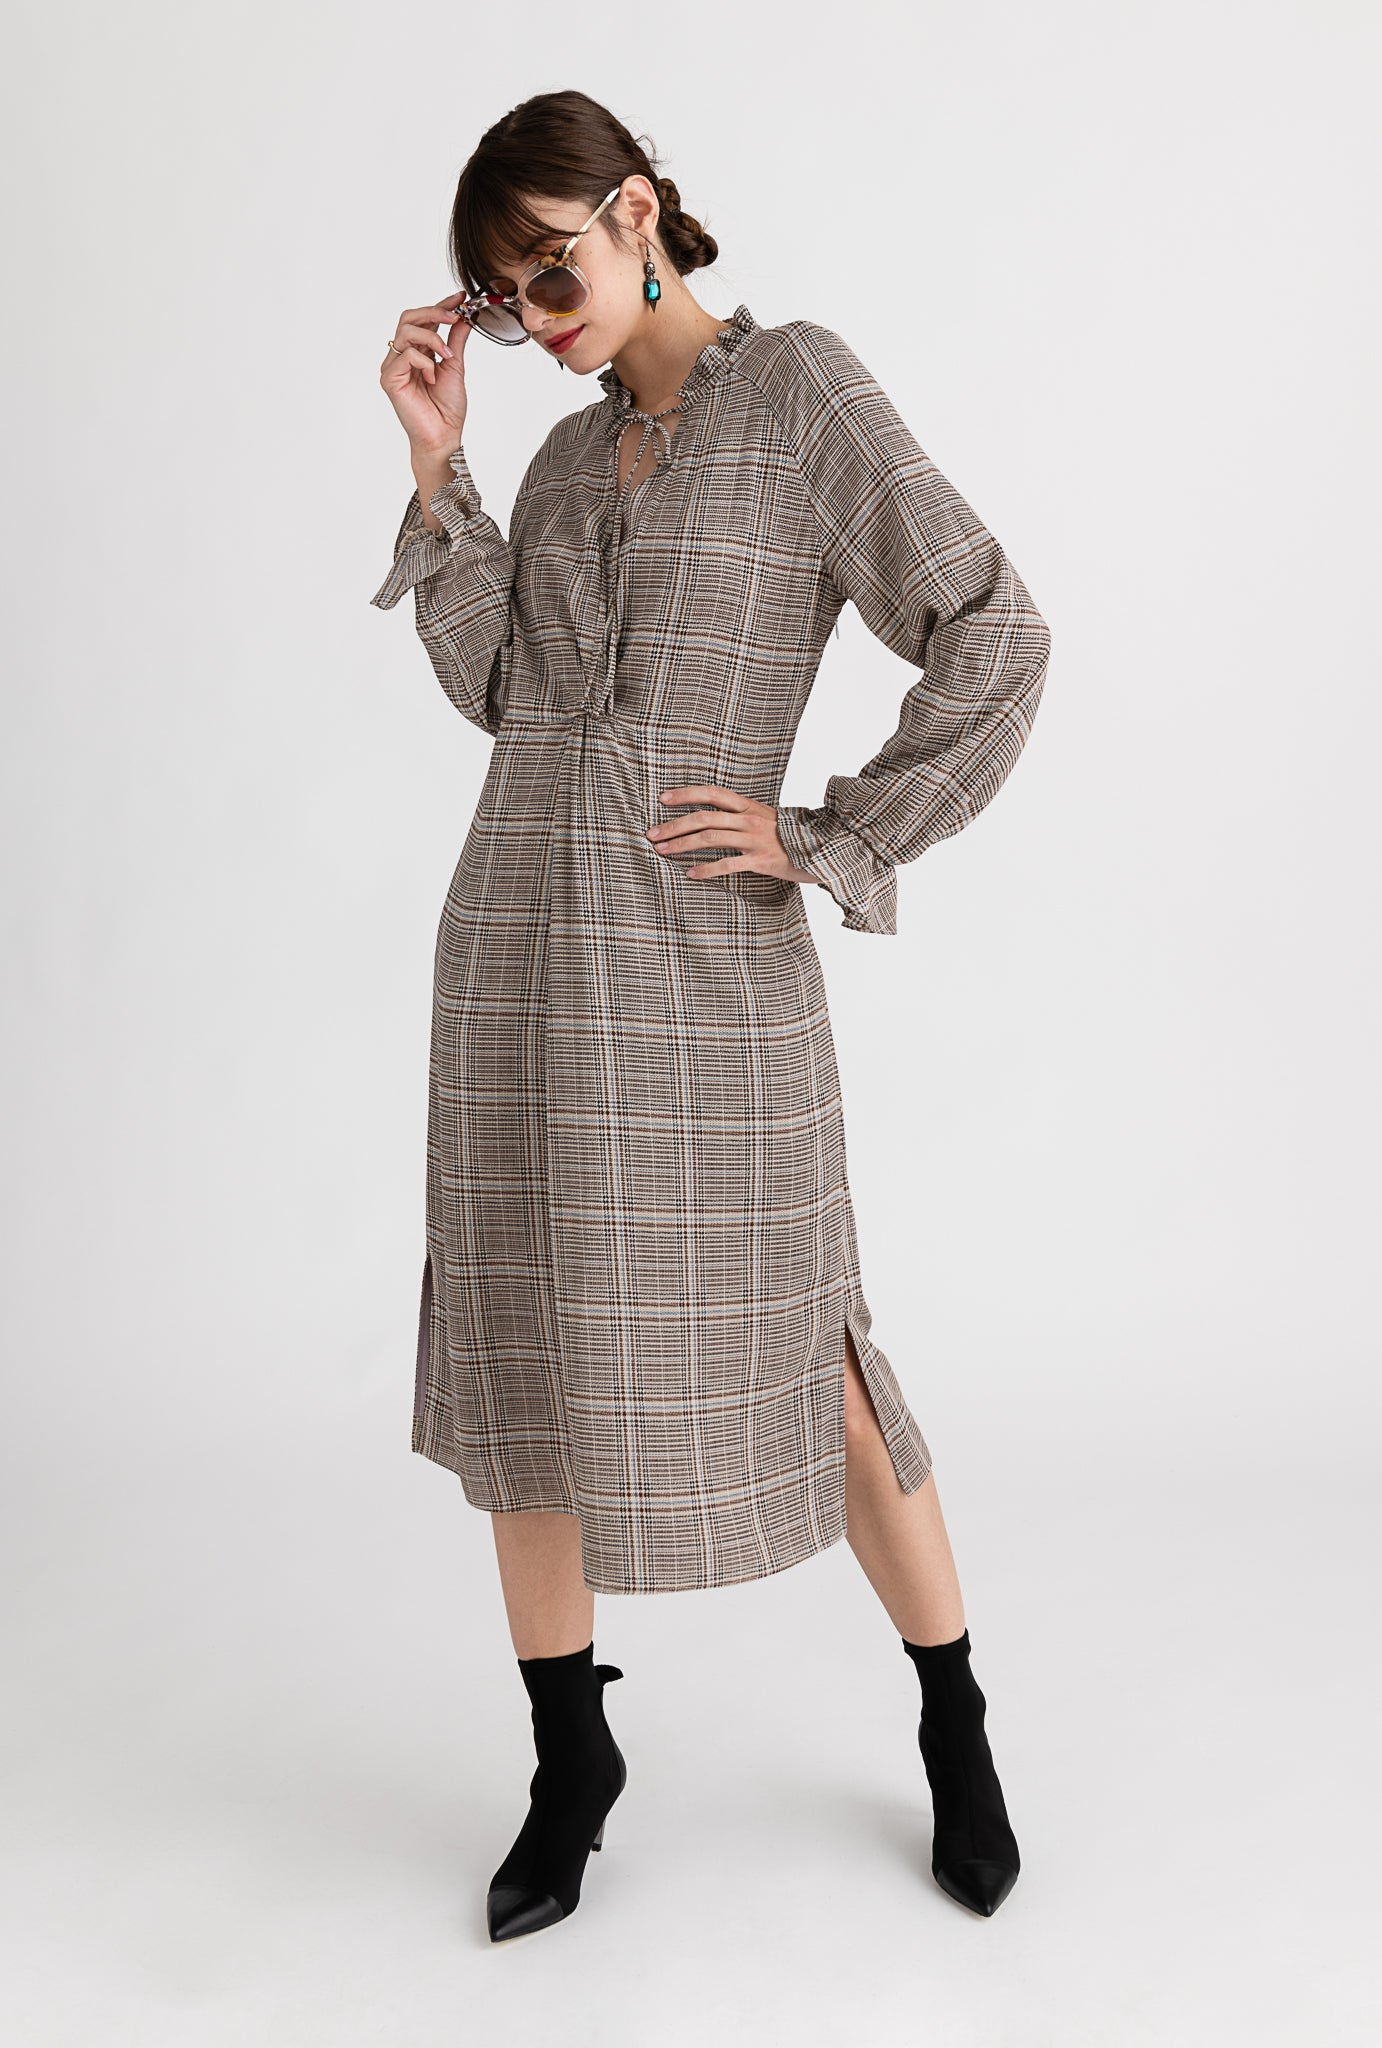 Clementine Dress - Static Plaid - Grey plaid ruffled neck side slit midi dress - Petite Studio NYC